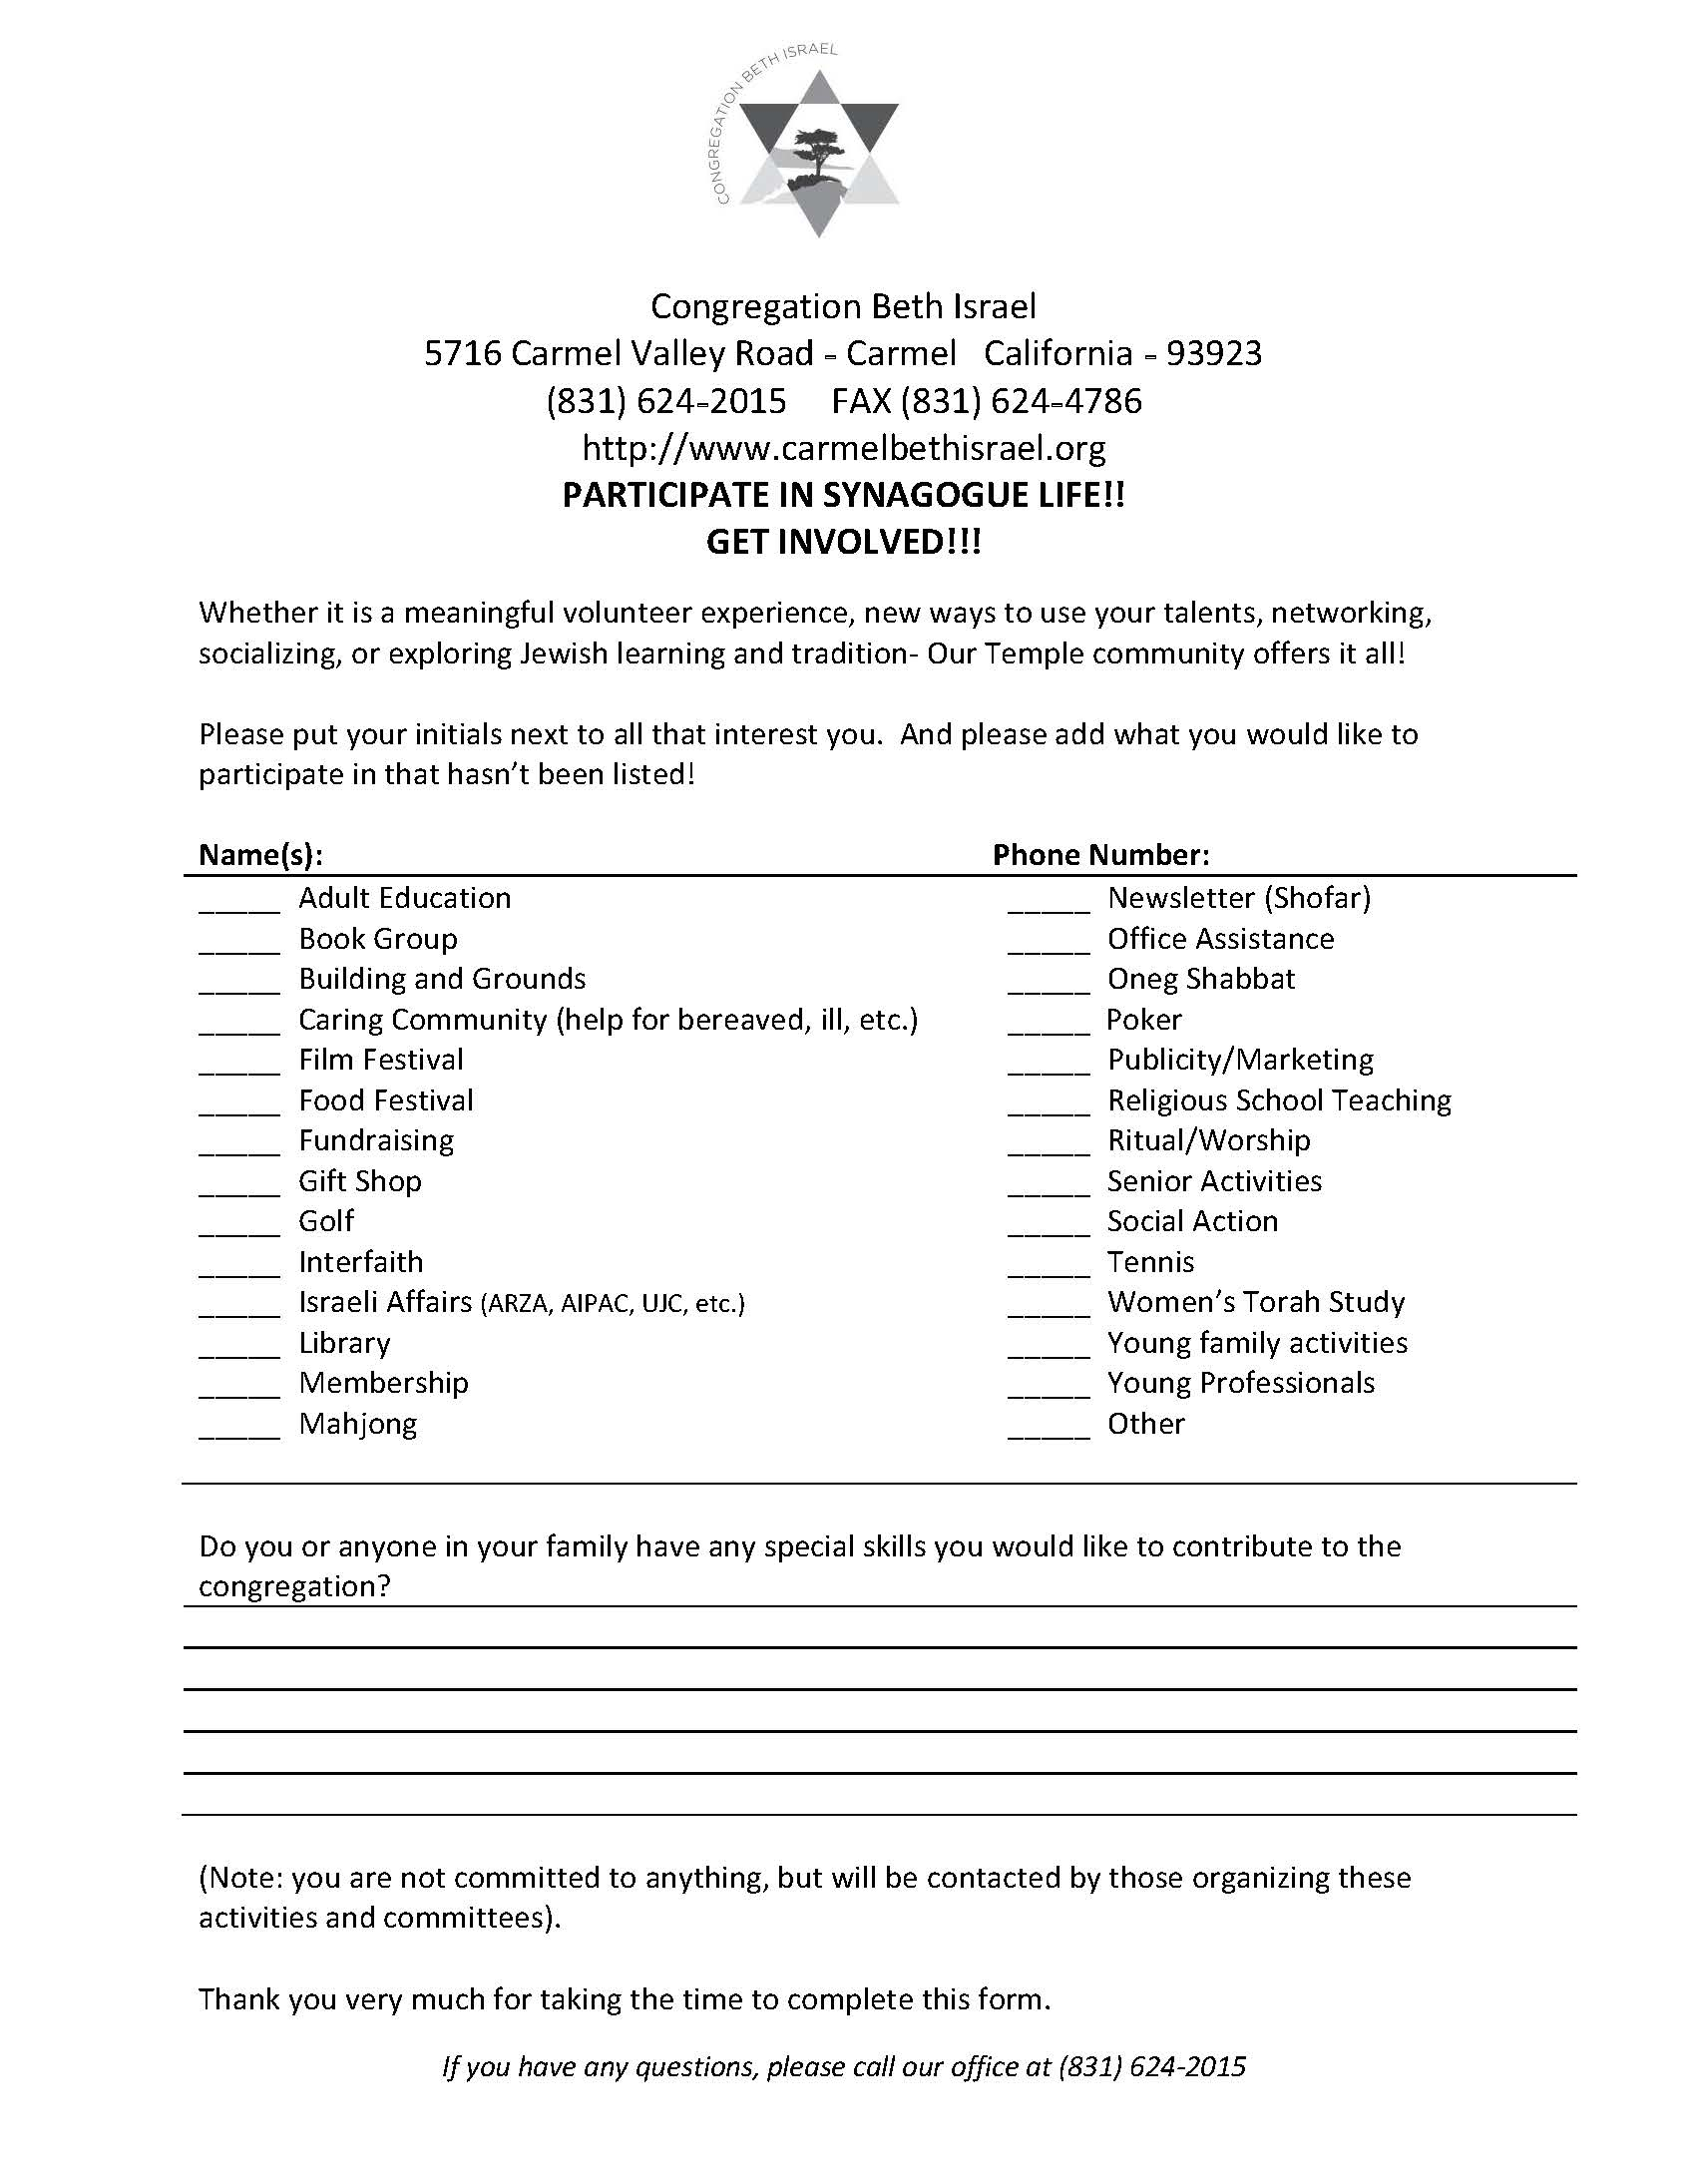 PARTICIPATE IN SYNAGOGUE LIFE Page 1